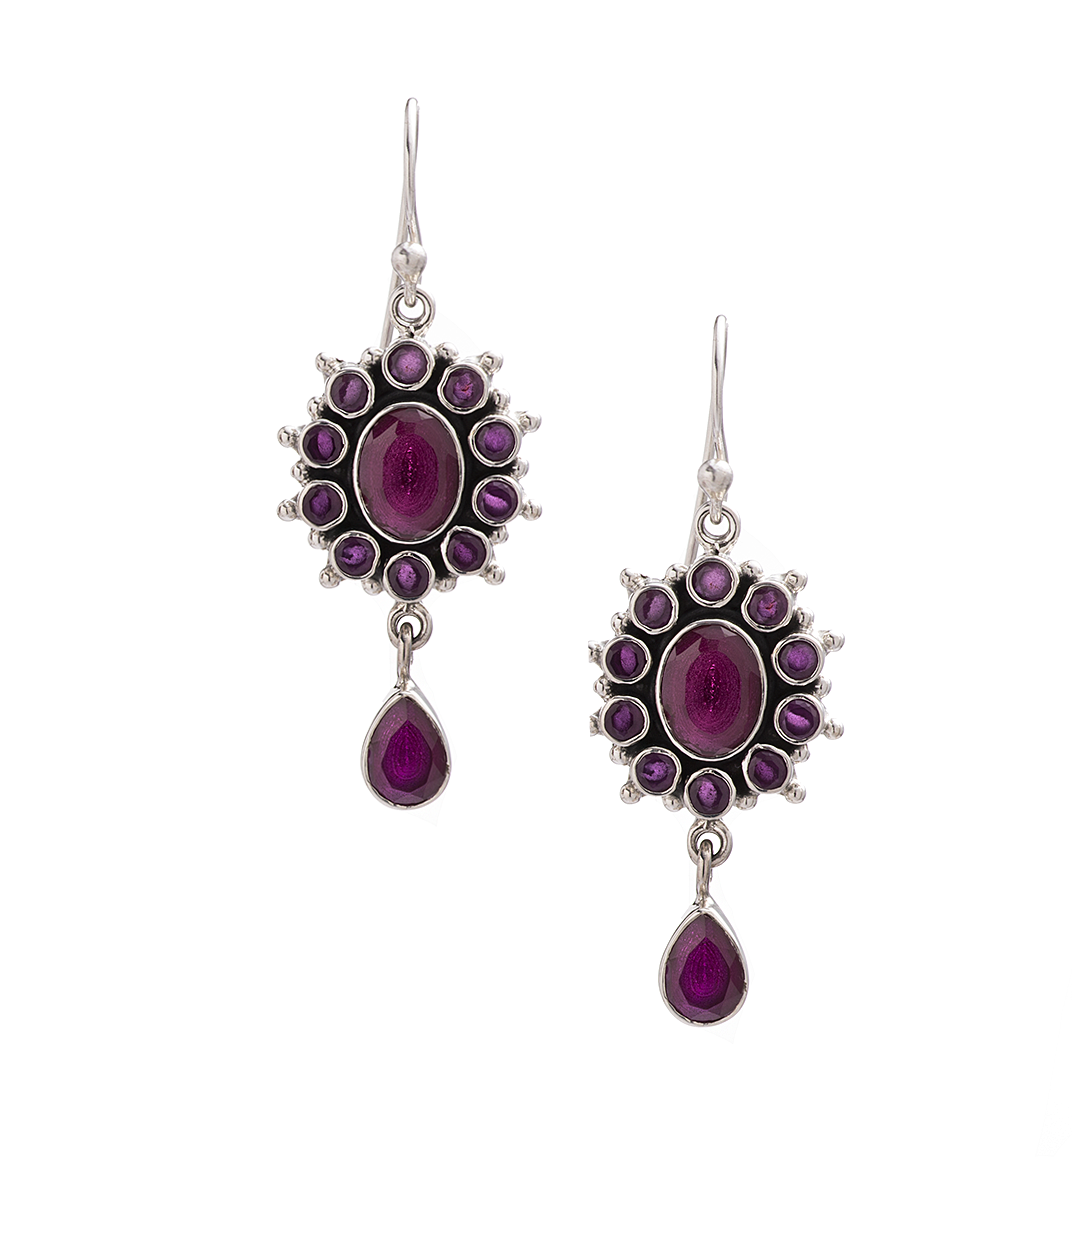 Amethyst Flower Drop Earrings in Sterling Silver